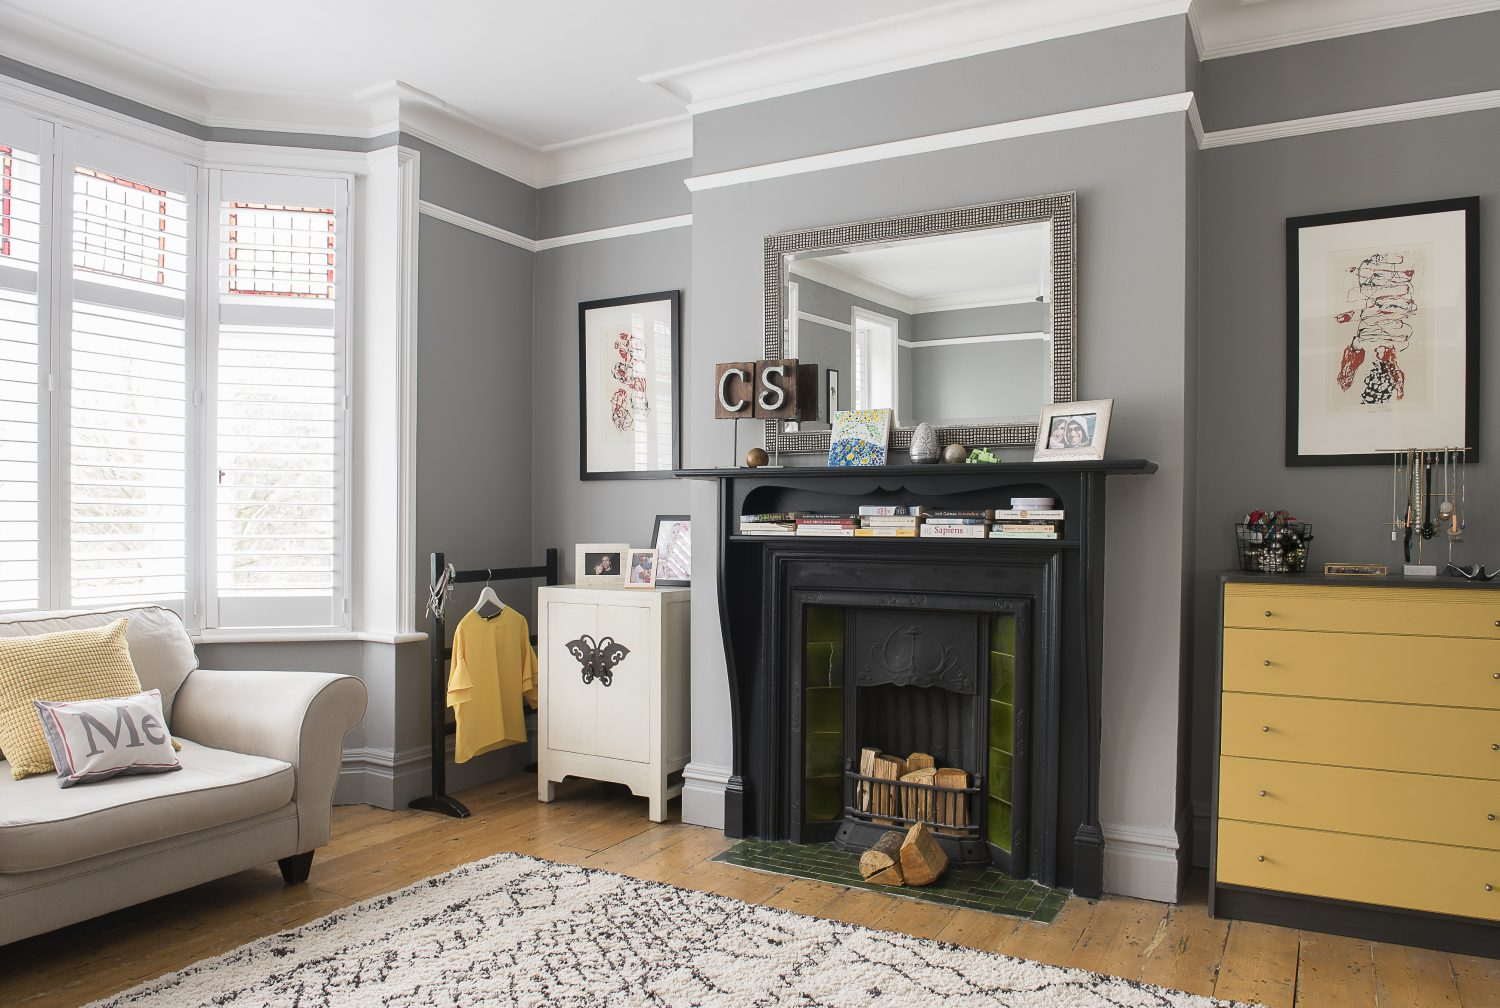 A brightly painted chest of drawers contrasts with the cool greys and blacks of the master bedroom